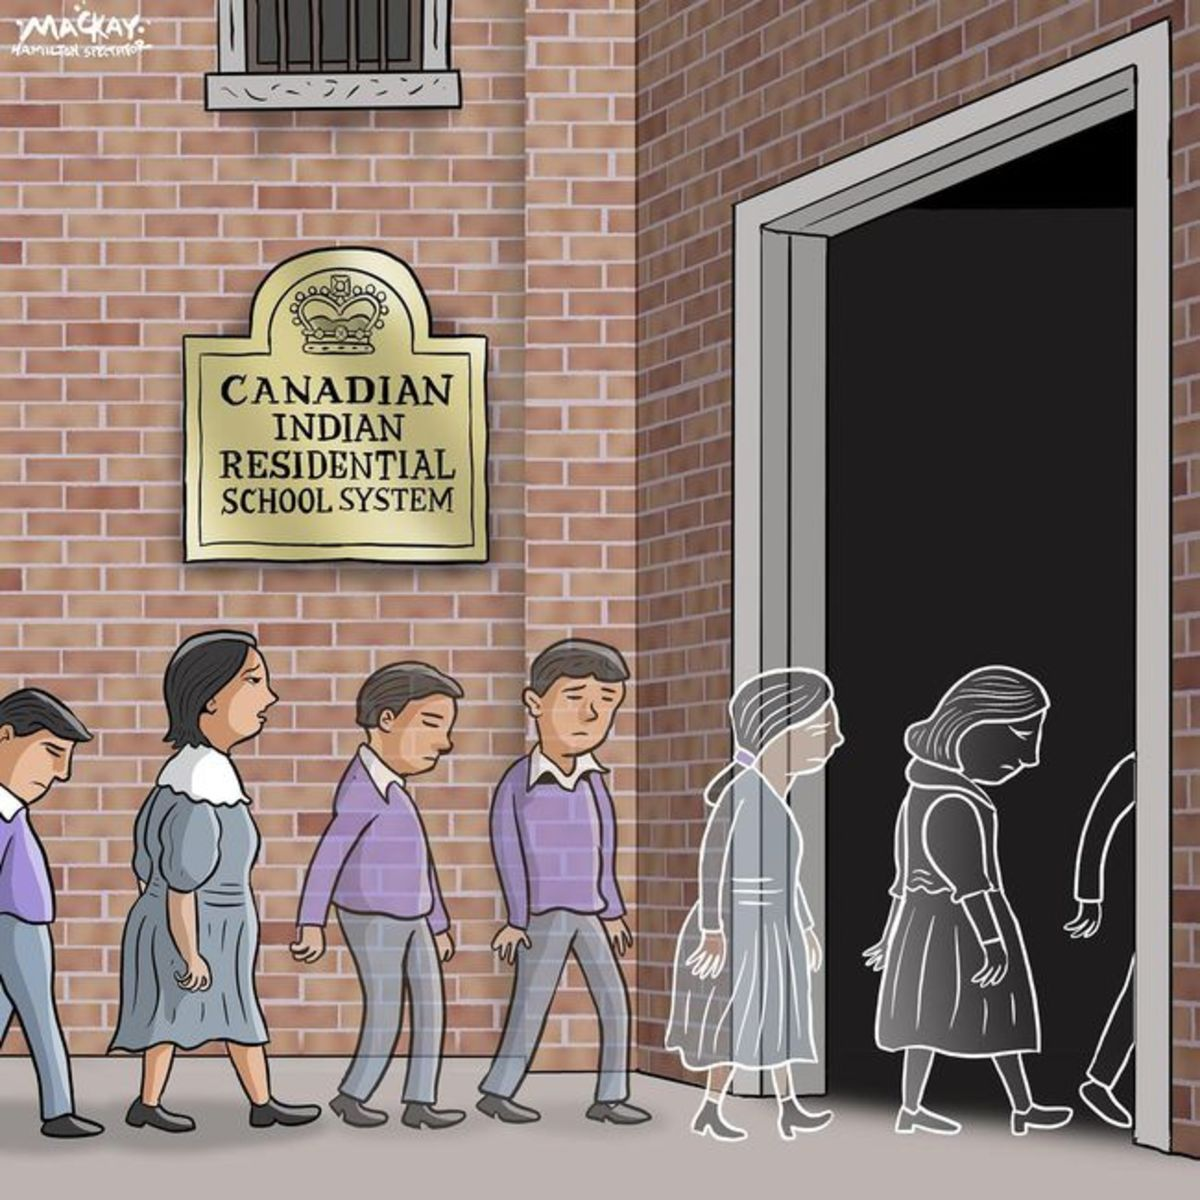 canada-shuns-colonial-past